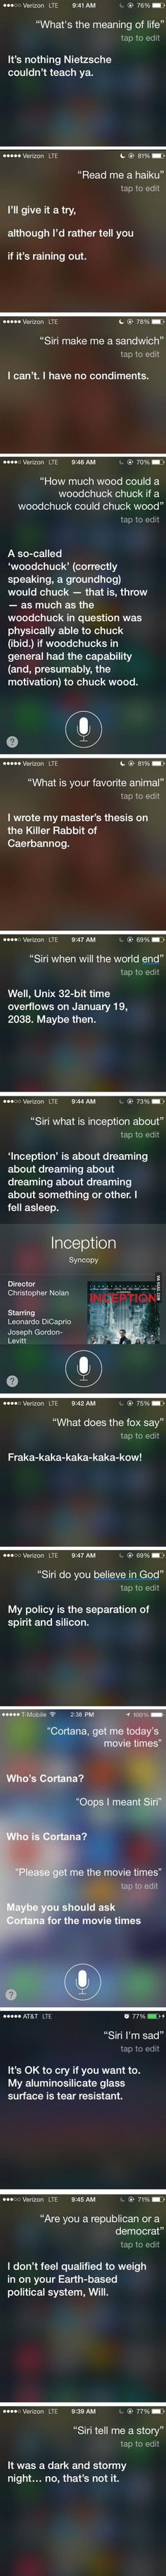 Hilariously Honest Answers From Siri To Uncomfortable Questions You Can Ask, Too